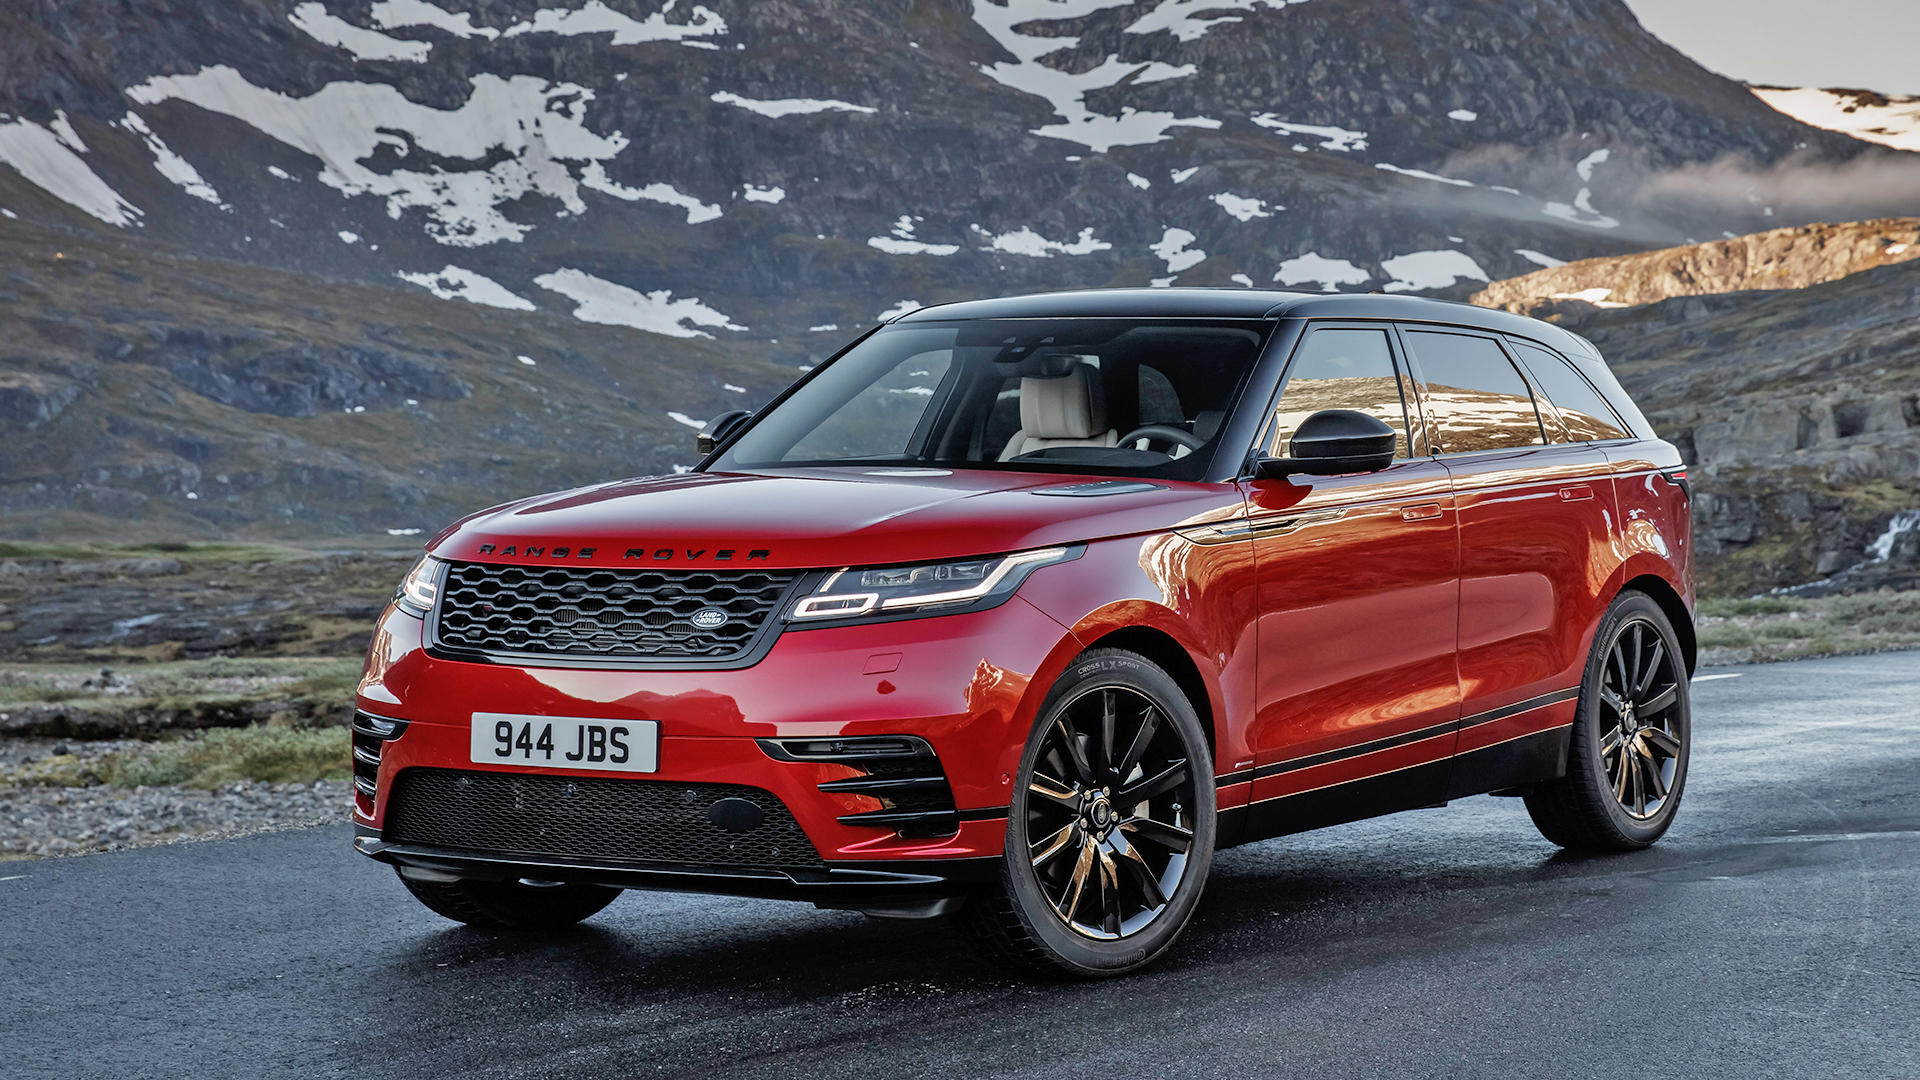 land rover velar 2017 exterior car photos overdrive. Black Bedroom Furniture Sets. Home Design Ideas